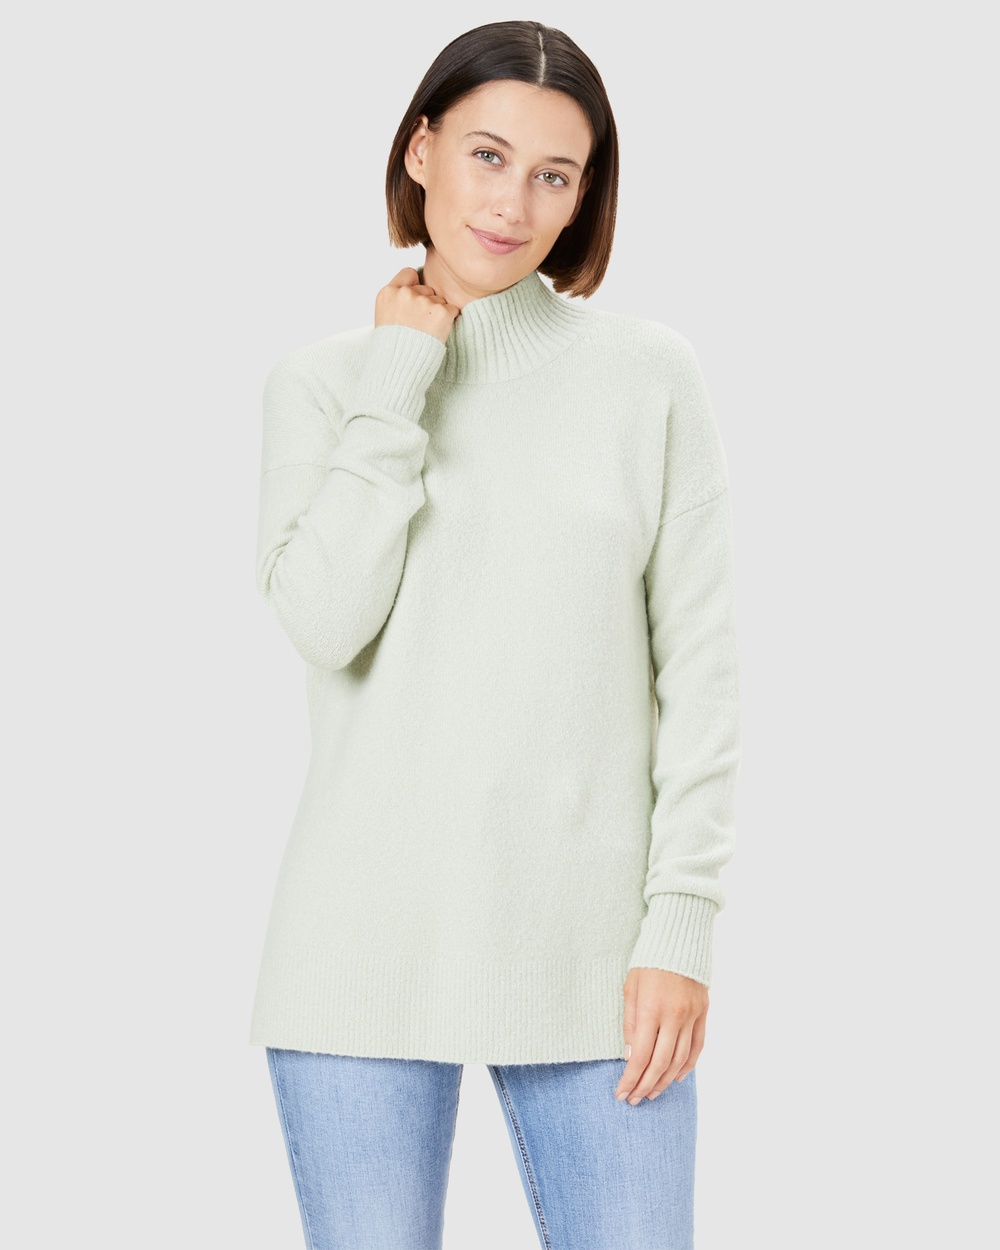 French Connection Cosy High Neck Knit Jumpers & Cardigans WASHED PISTACHIO Australia